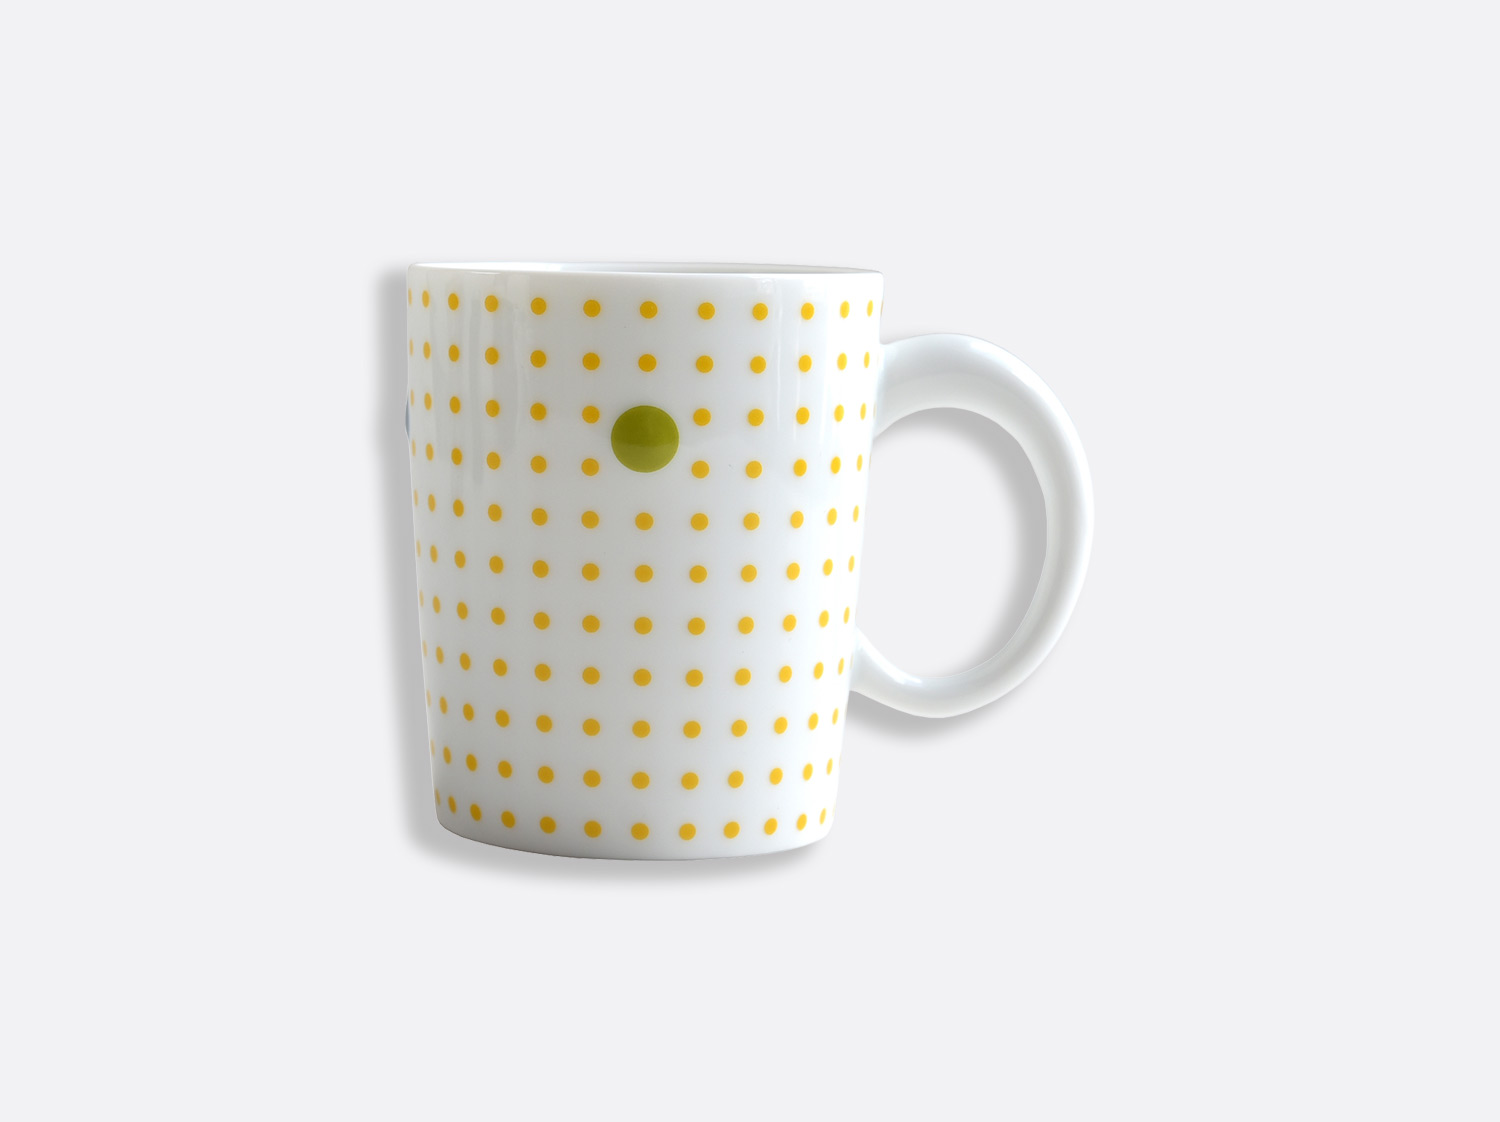 Mug 25 cl jaune en porcelaine de la collection Knossos - Olivier Gagnère Bernardaud